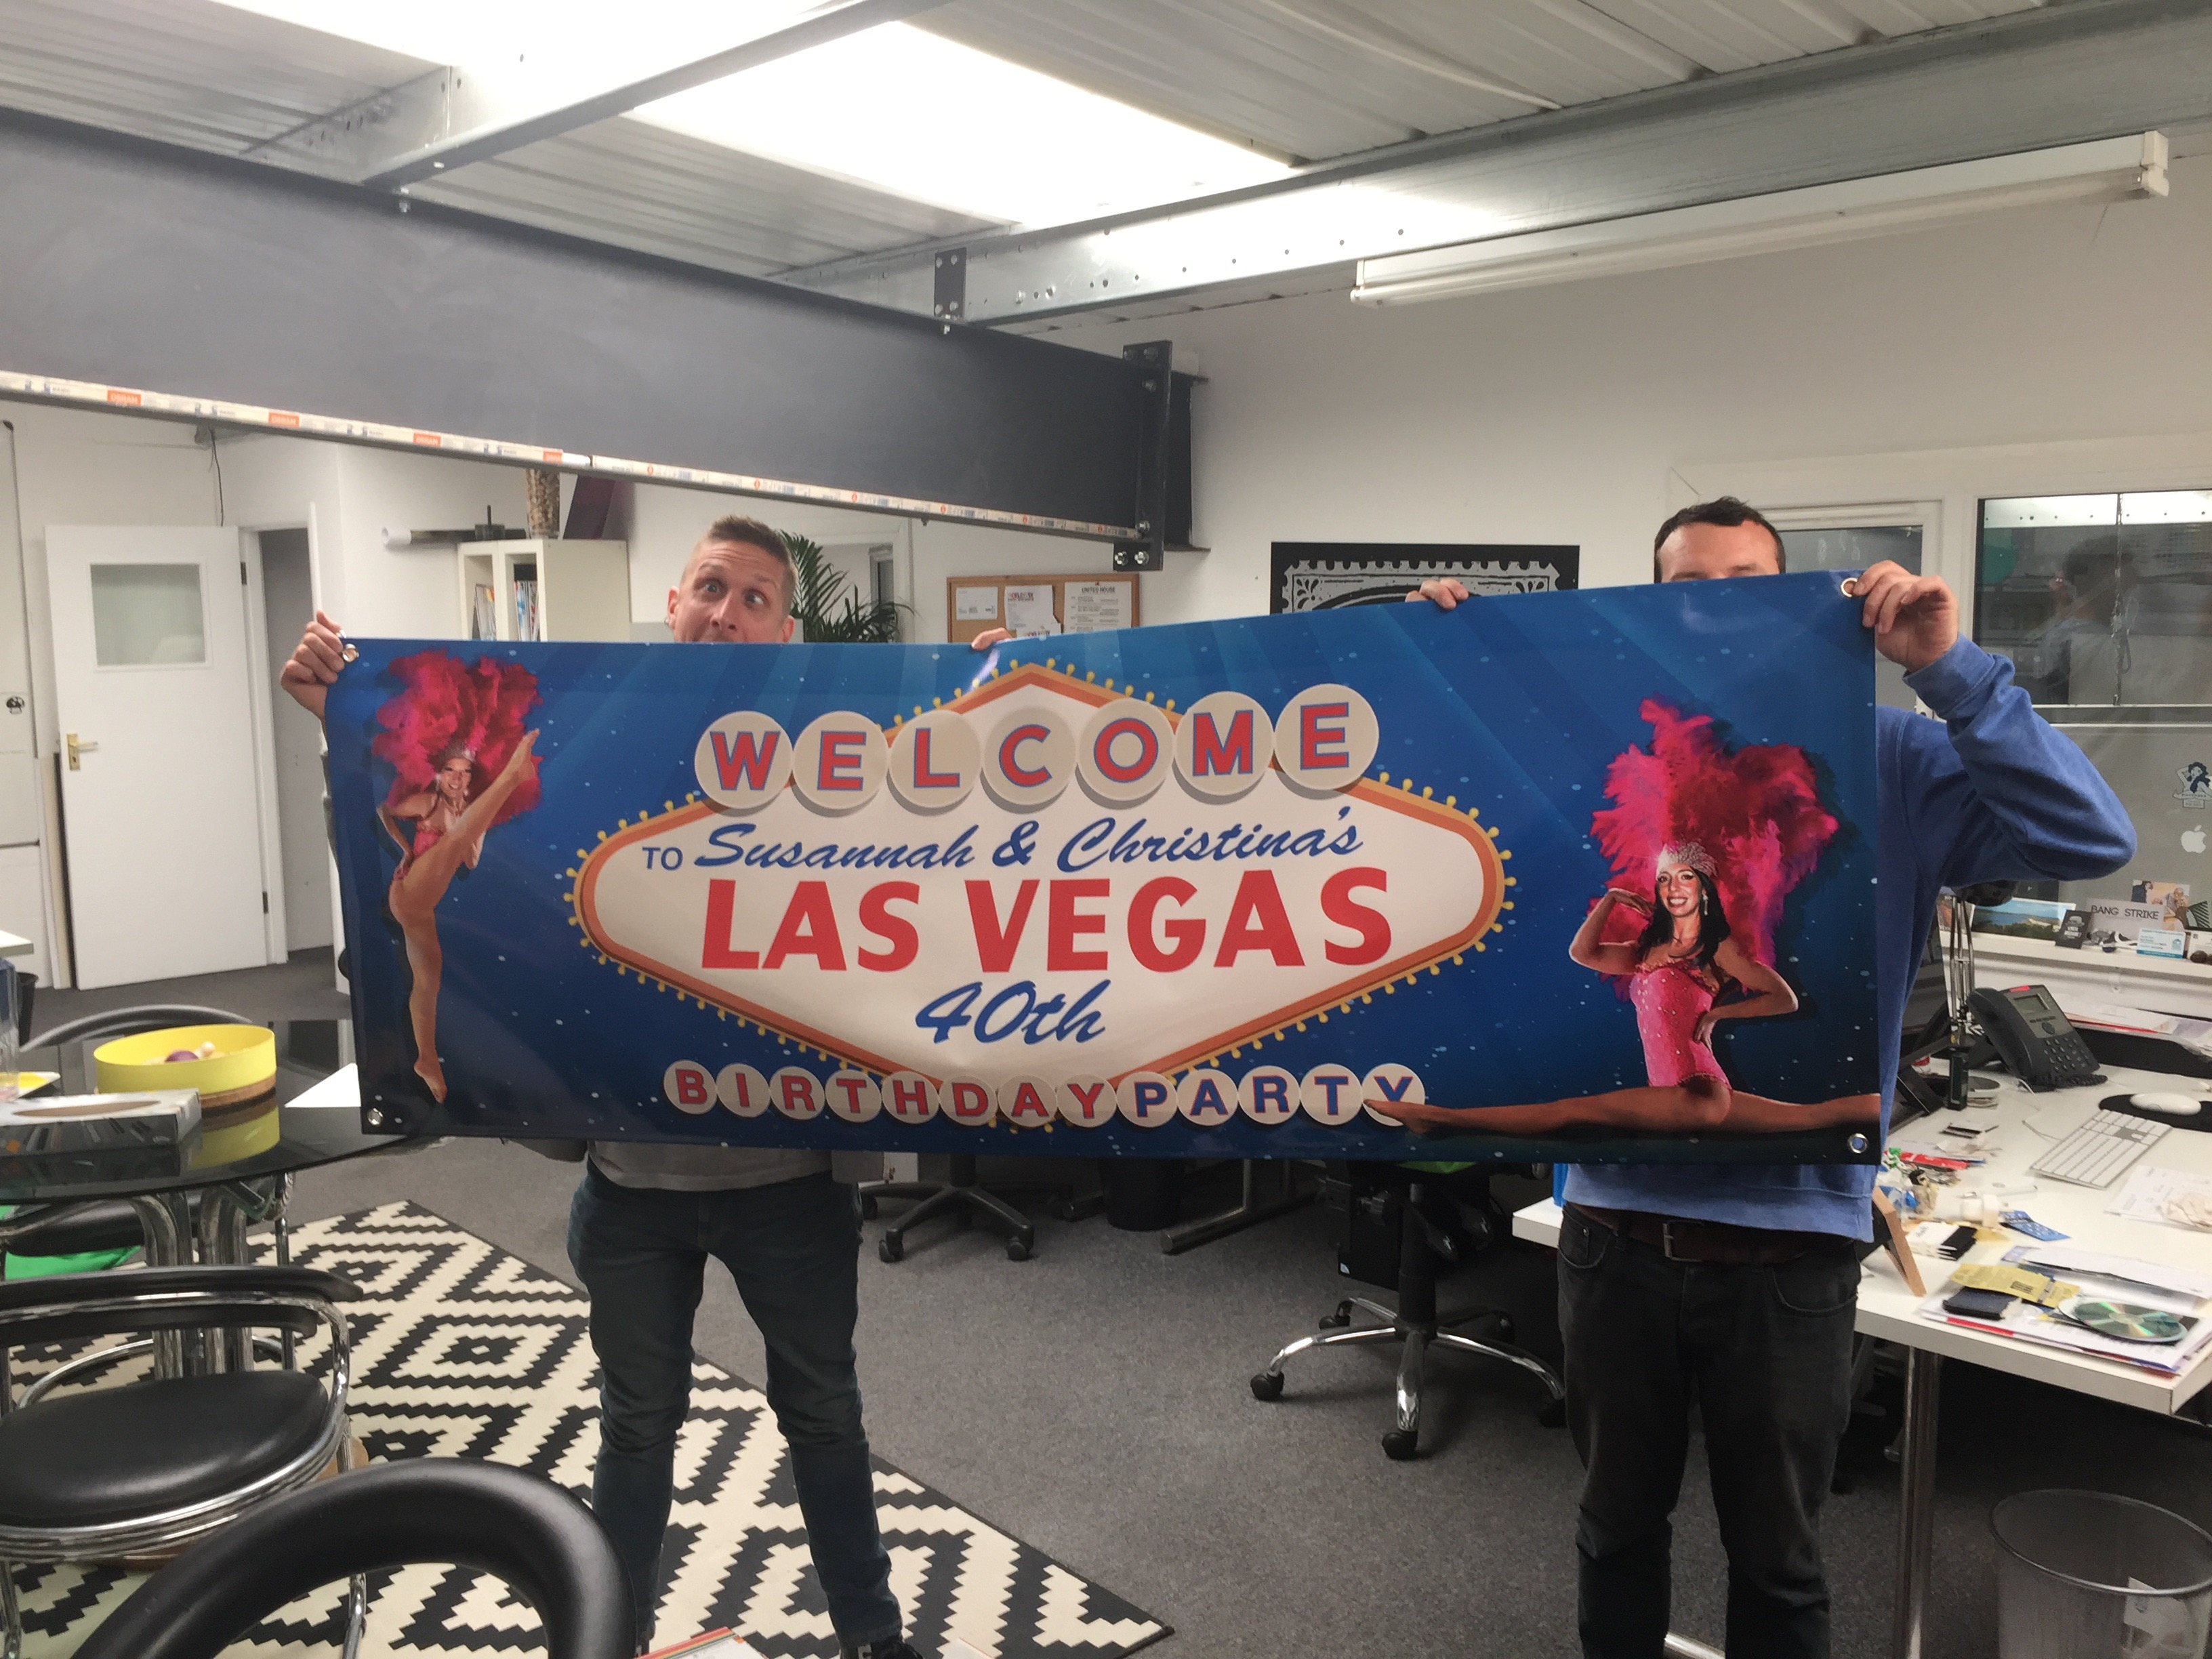 Wide format print colour banners